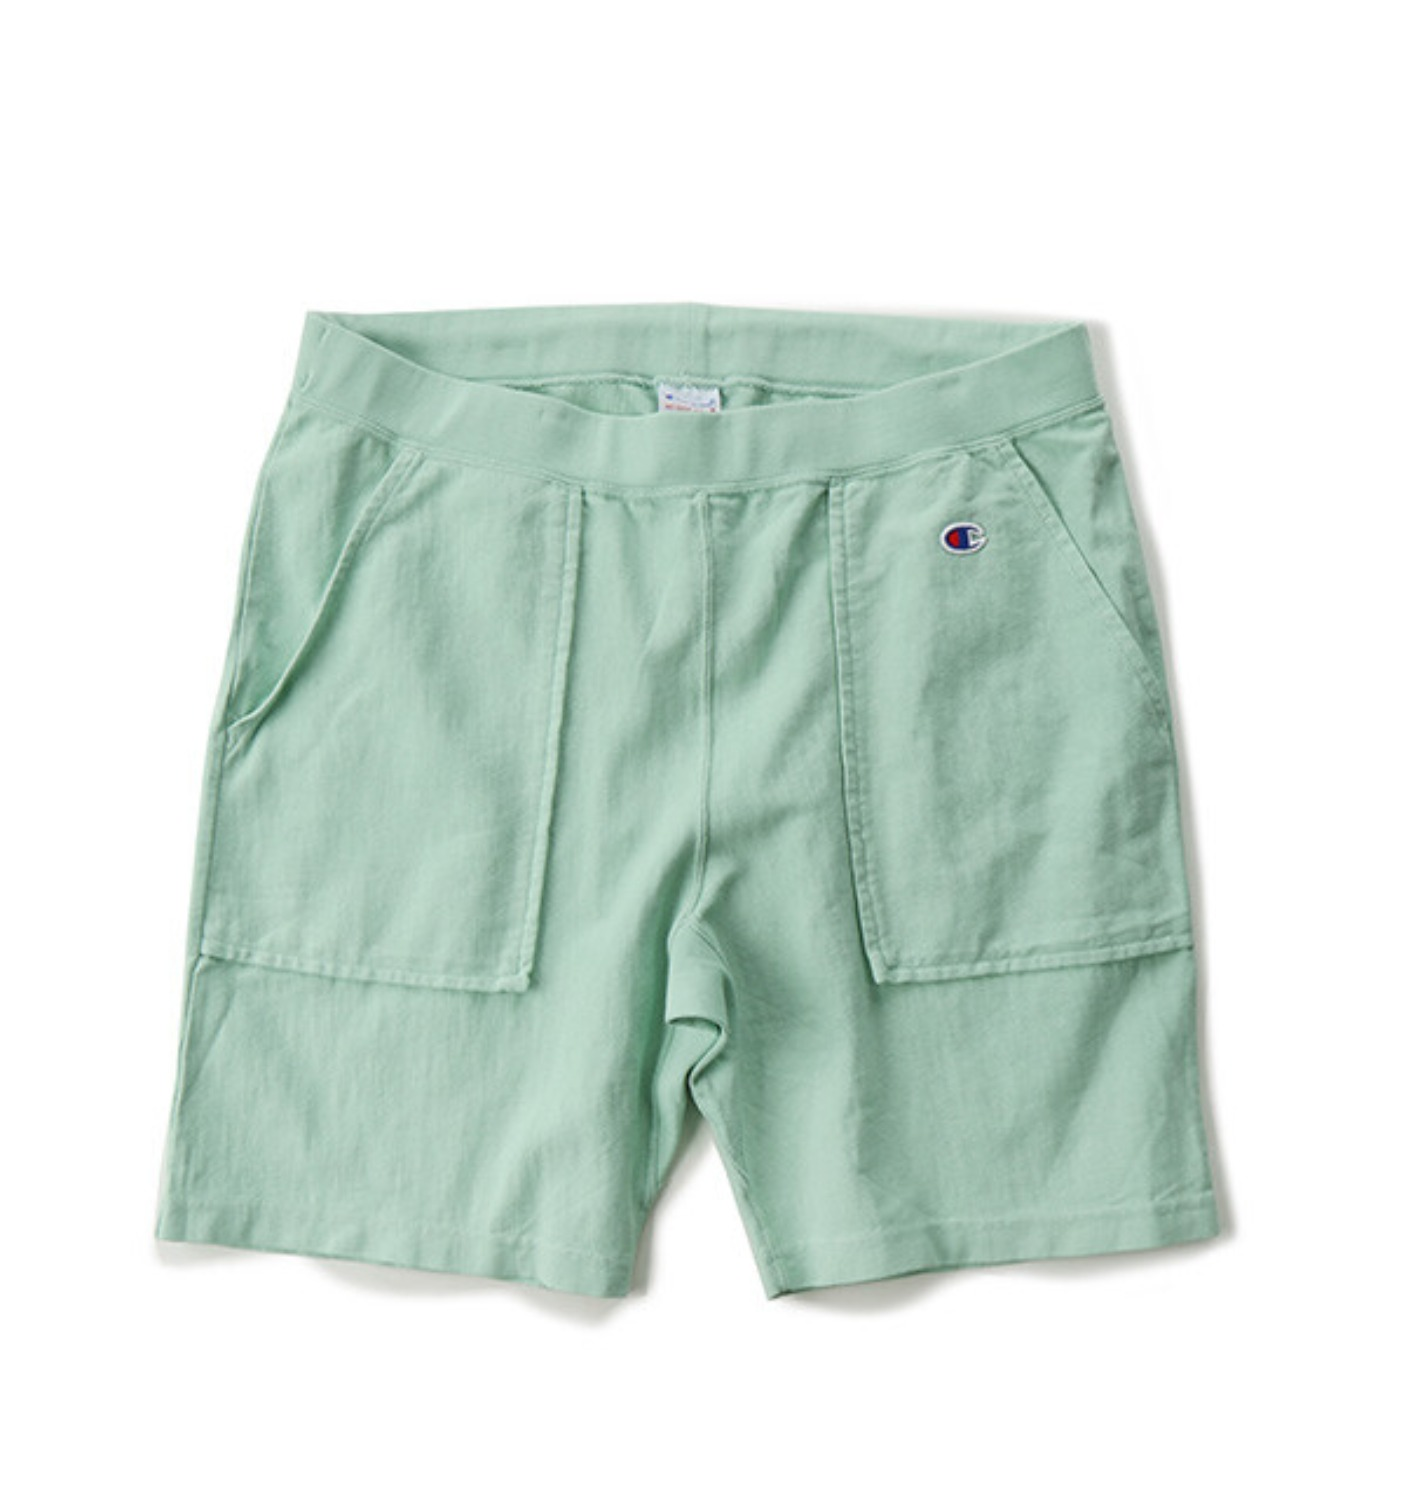 REVERSE WEAVE 9.4OZ SHORT PANT LIME